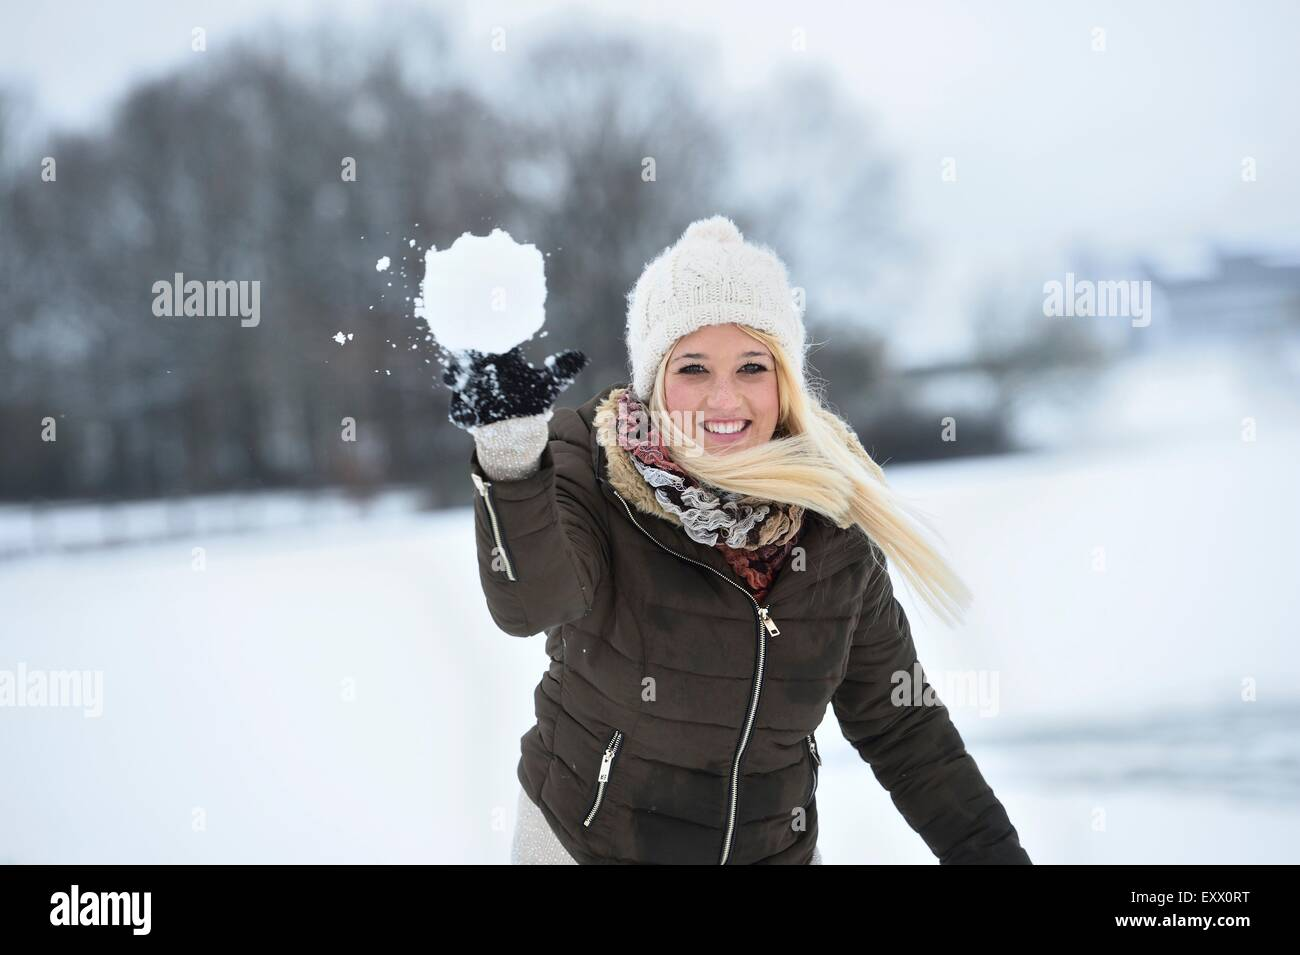 Happy young woman throwing a snowball - Stock Image